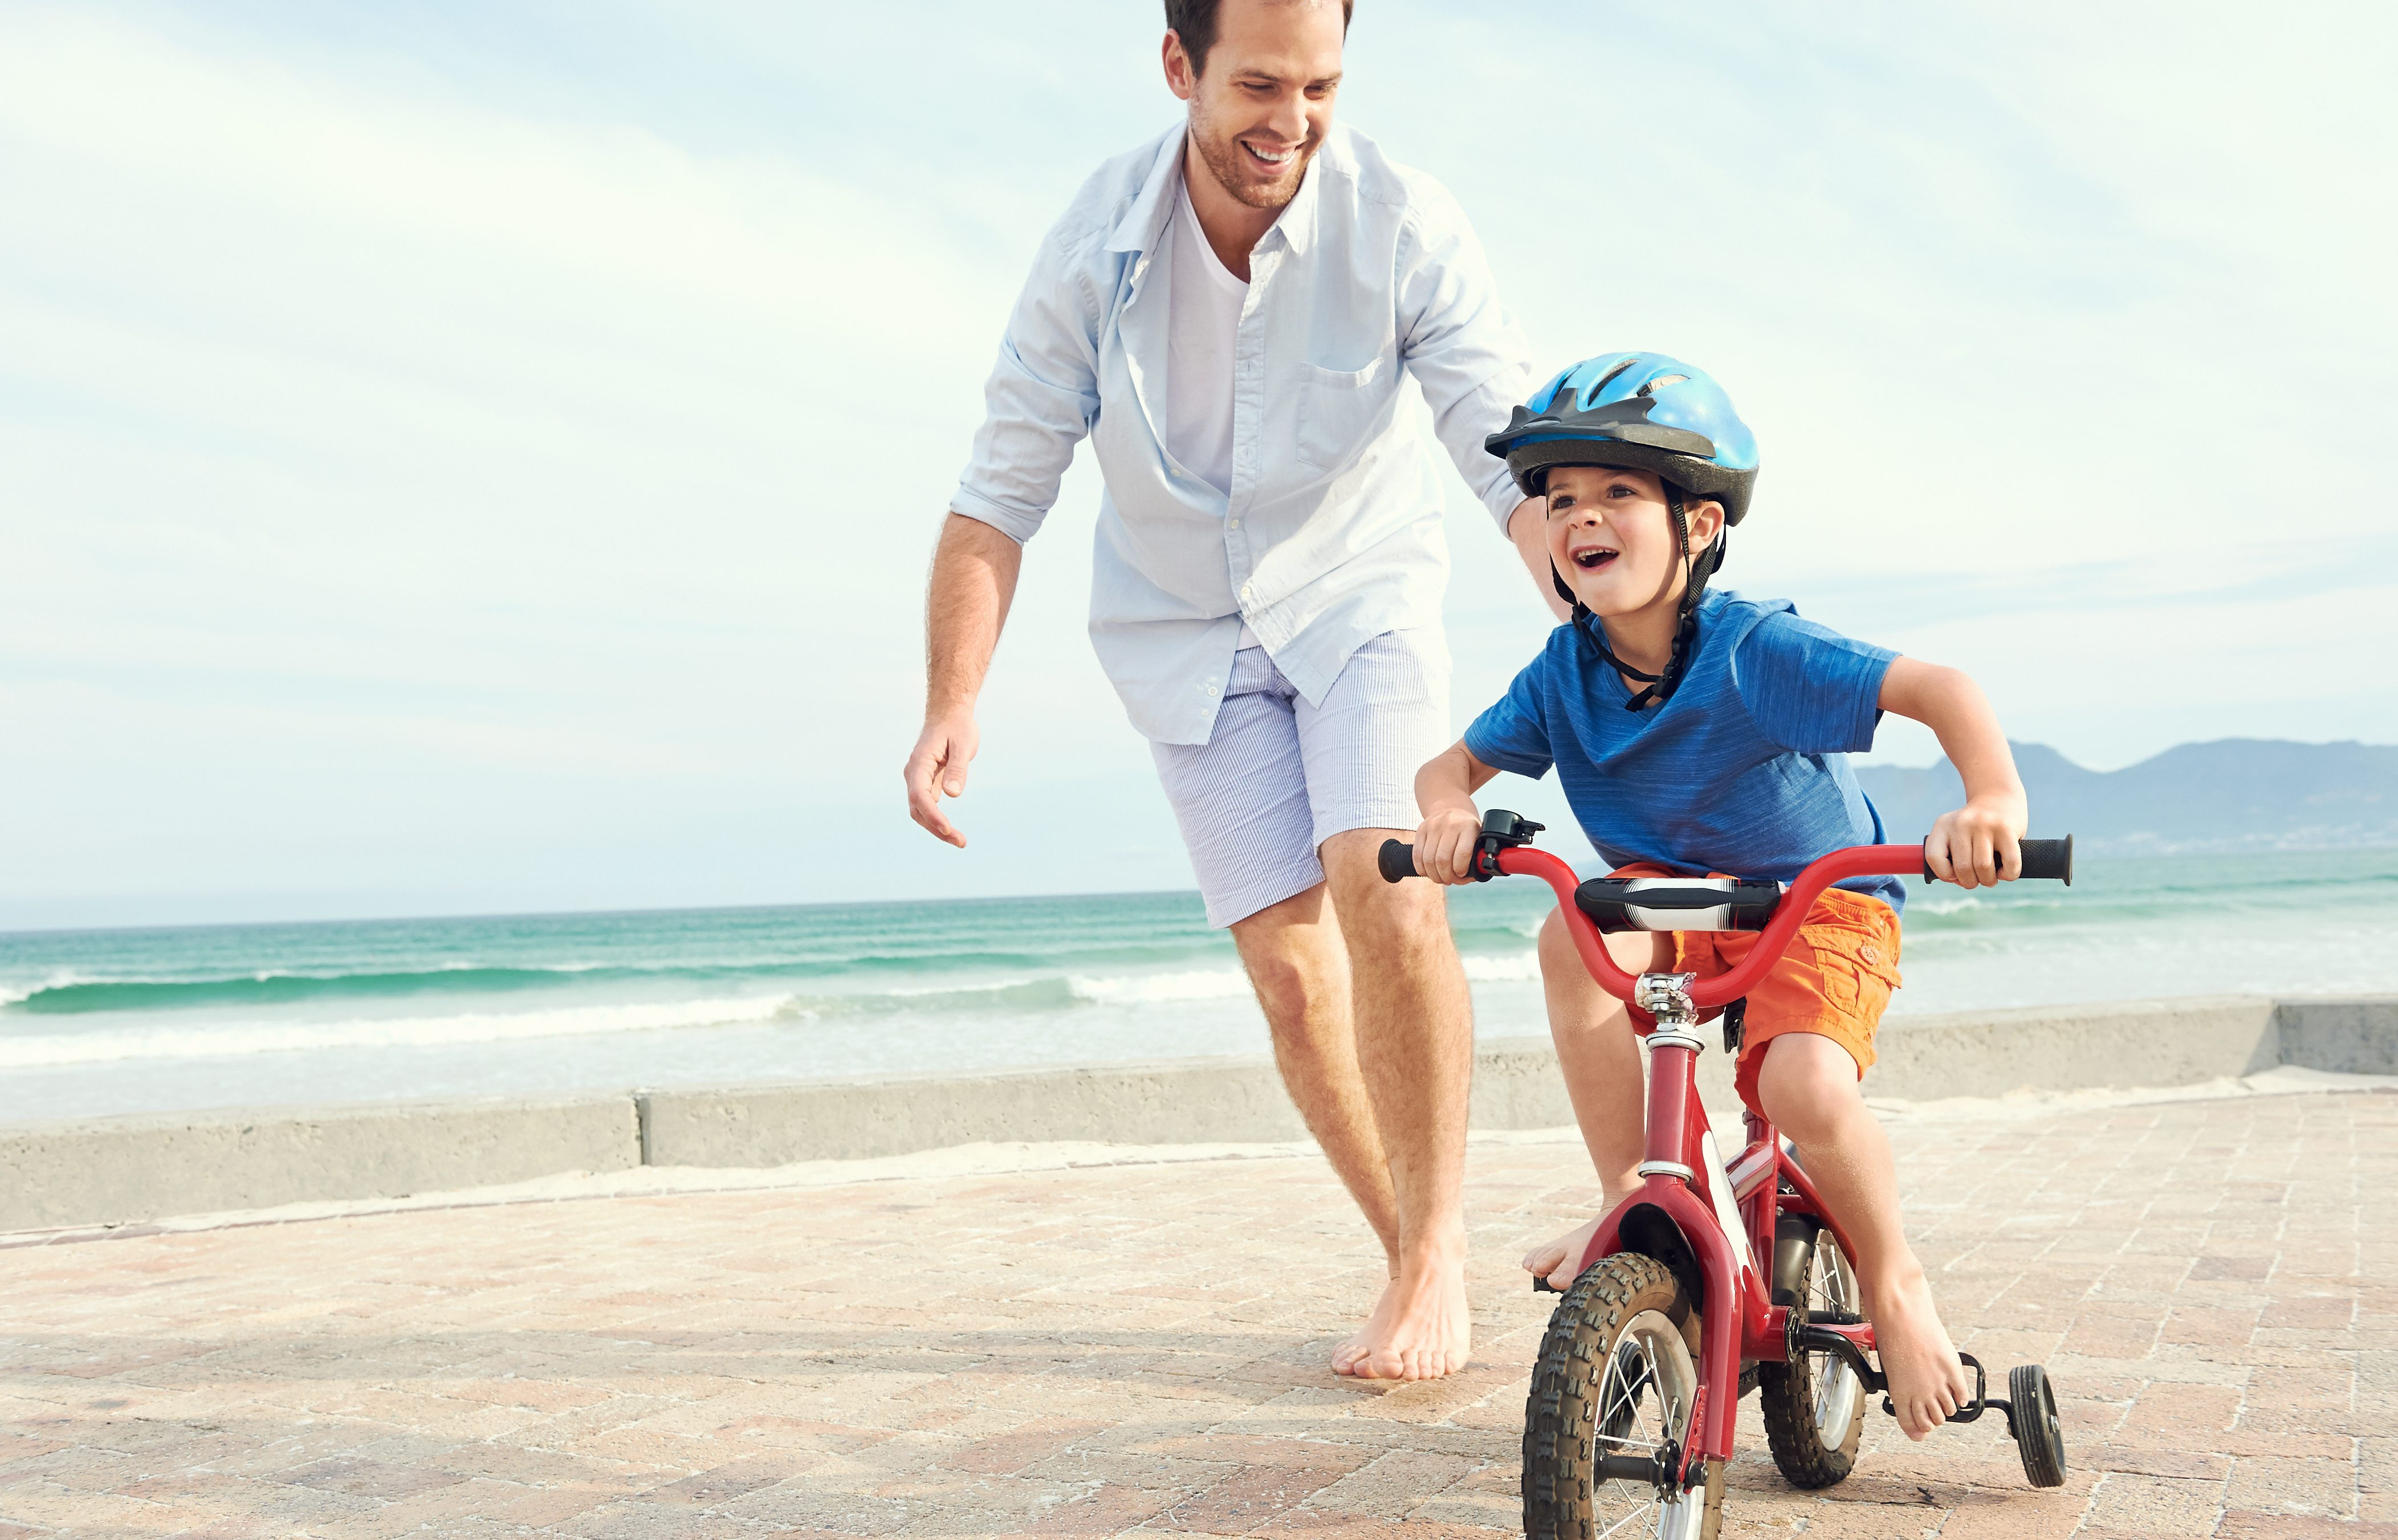 Exploring the effect of parental influence on children's physical activity